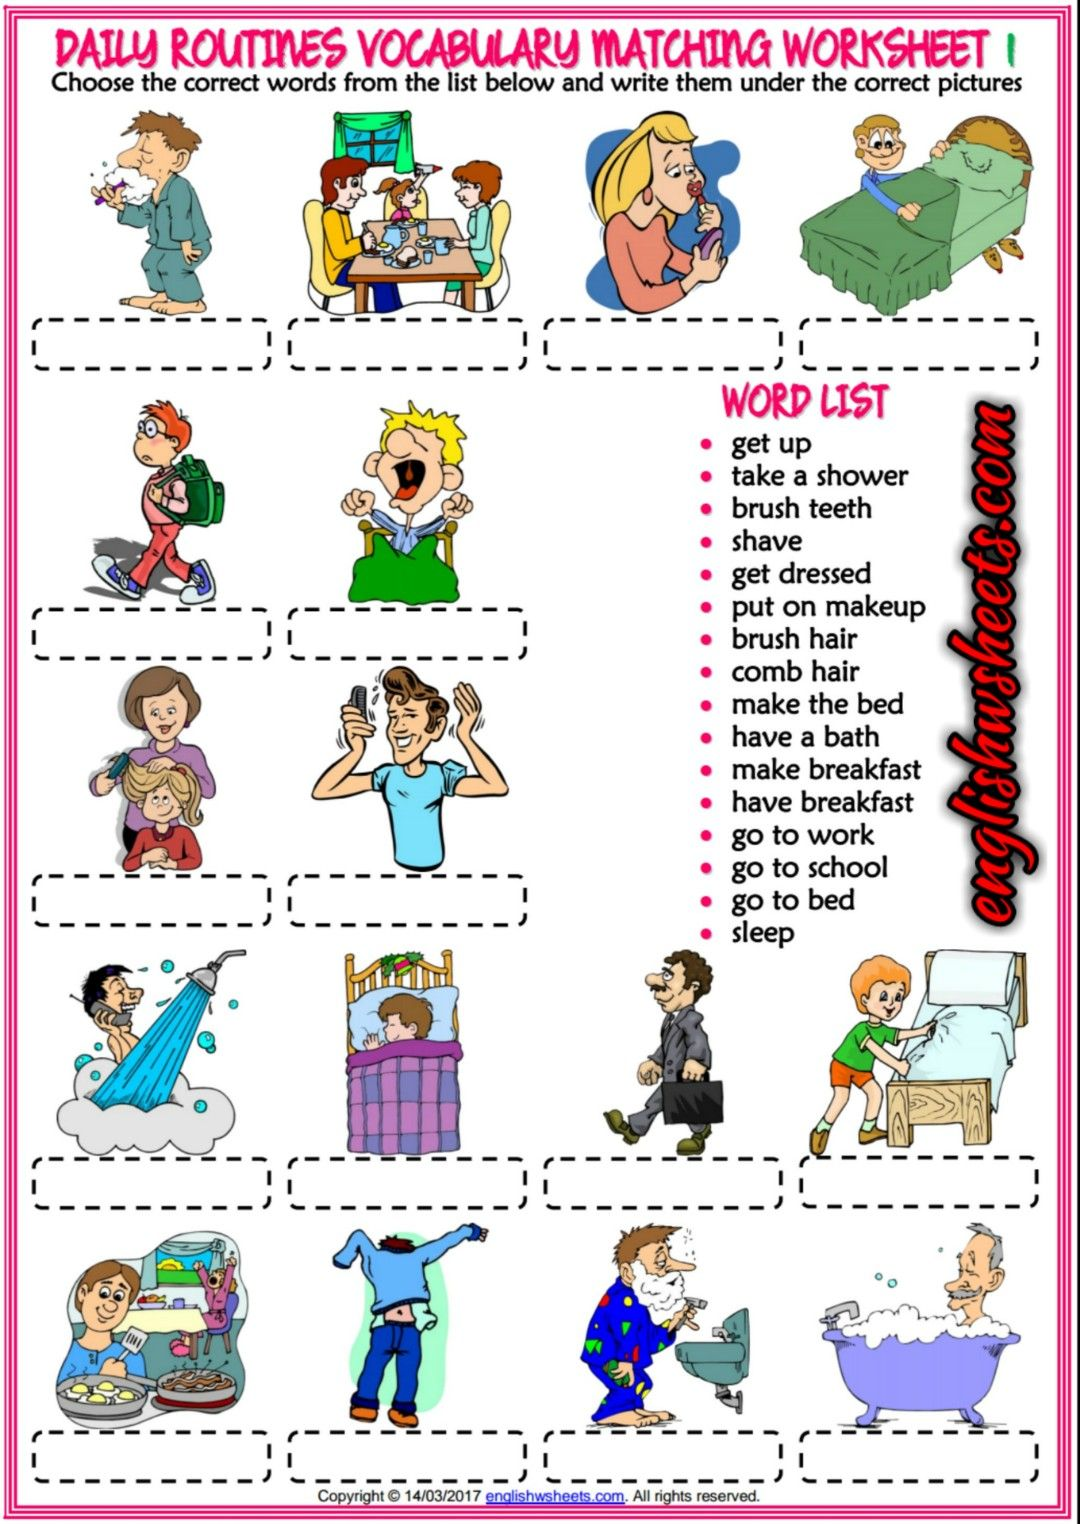 Daily Routines Esl Printable Matching Exercise Worksheets For Kids